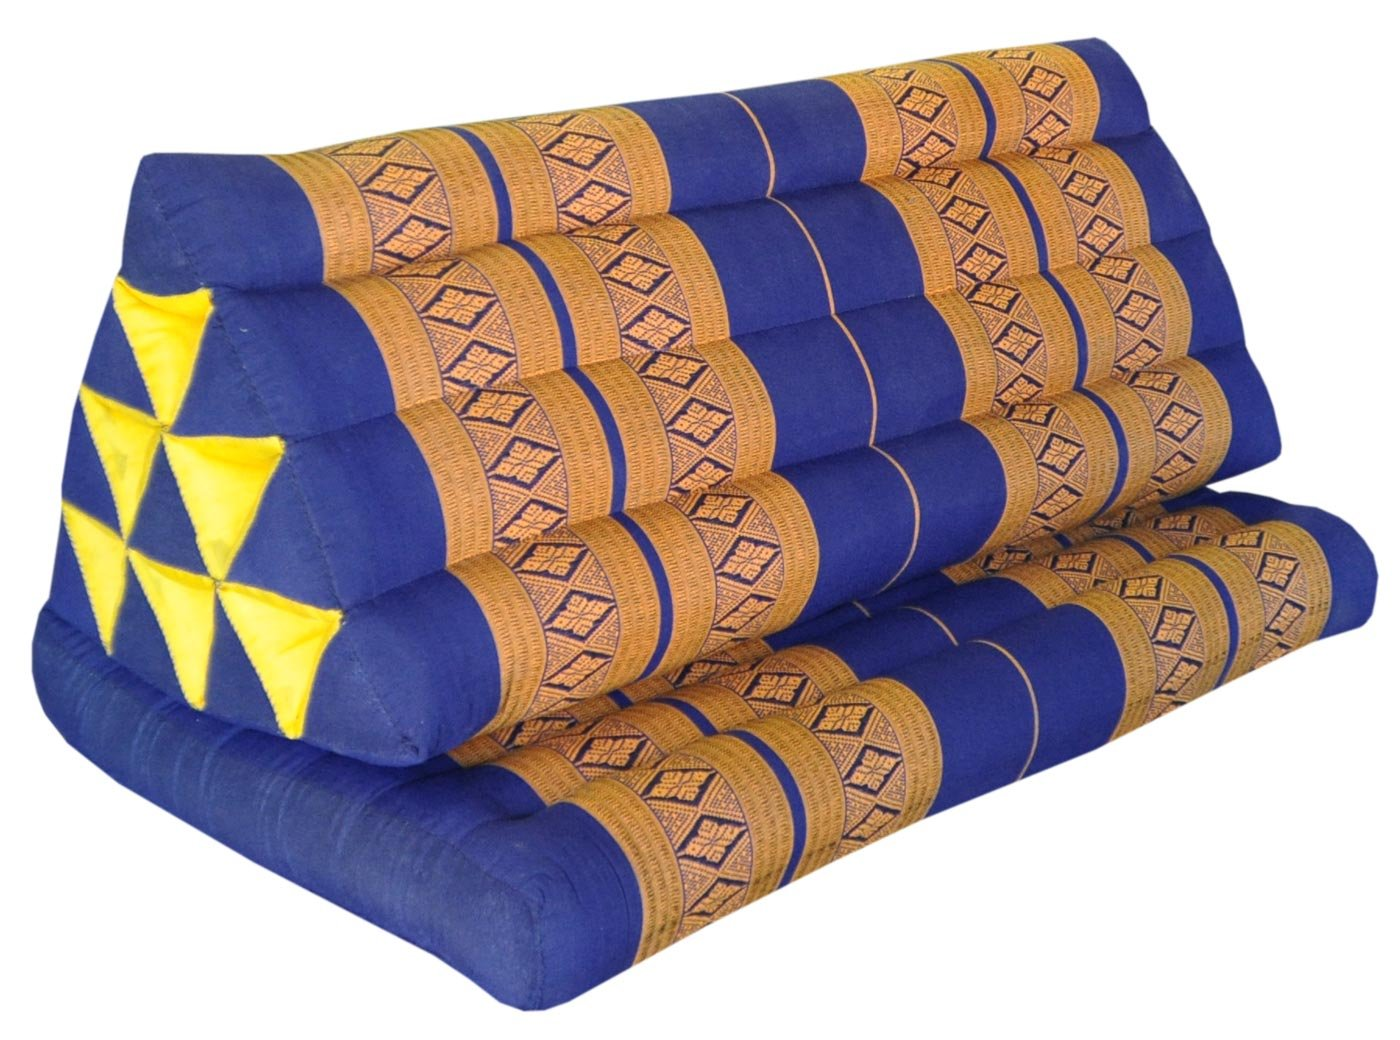 Thai triangle cushion XXL, with 1 folding seat, blue/yellow, sofa, relaxation, beach, pool, meditation, yoga, made in Thailand. (82116) by Wilai GmbH